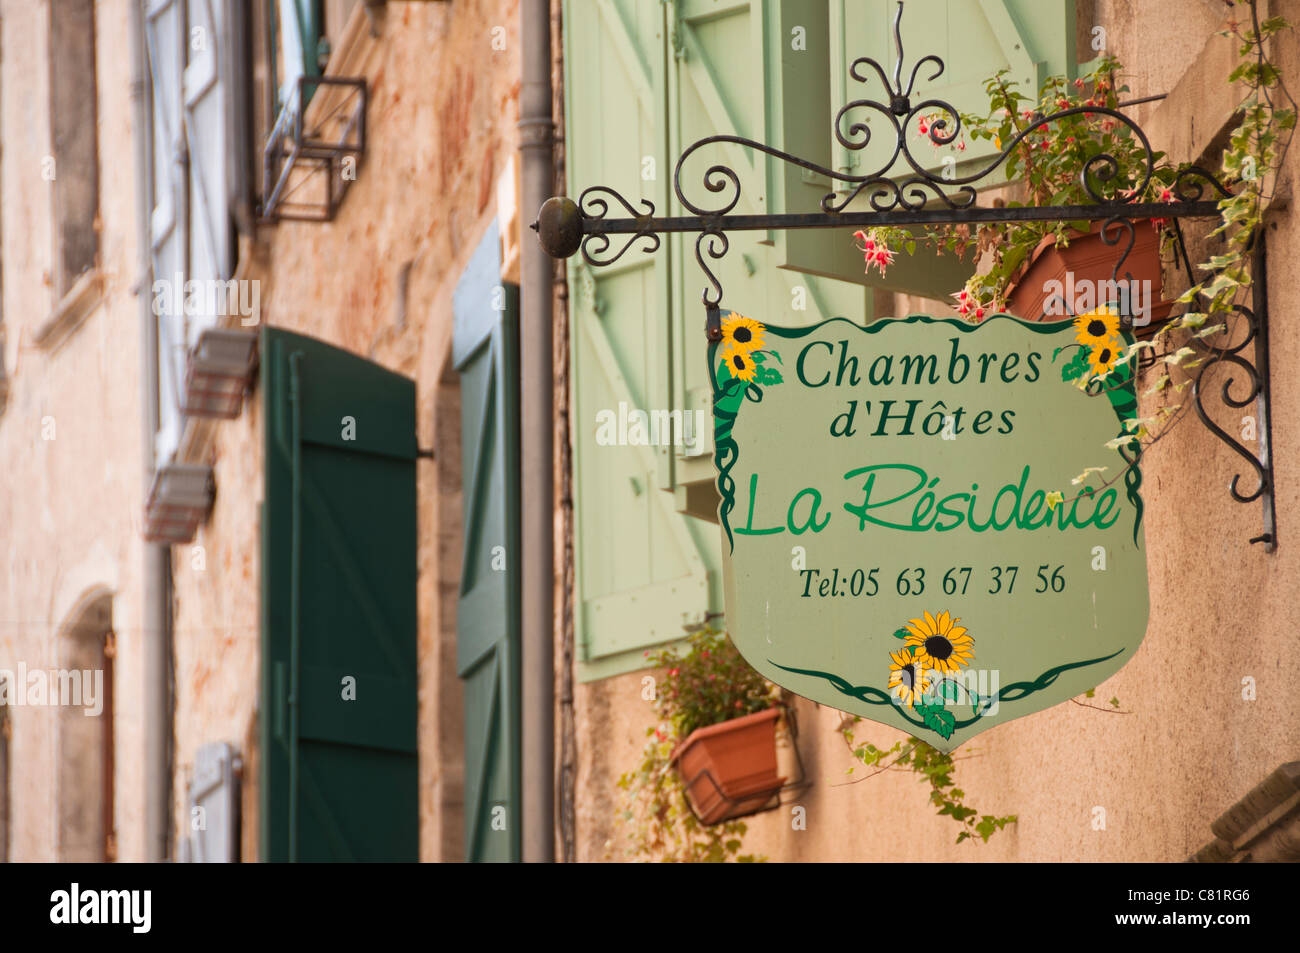 Chambres Dhotes Sign Stock Photos Chambres Dhotes Sign Stock